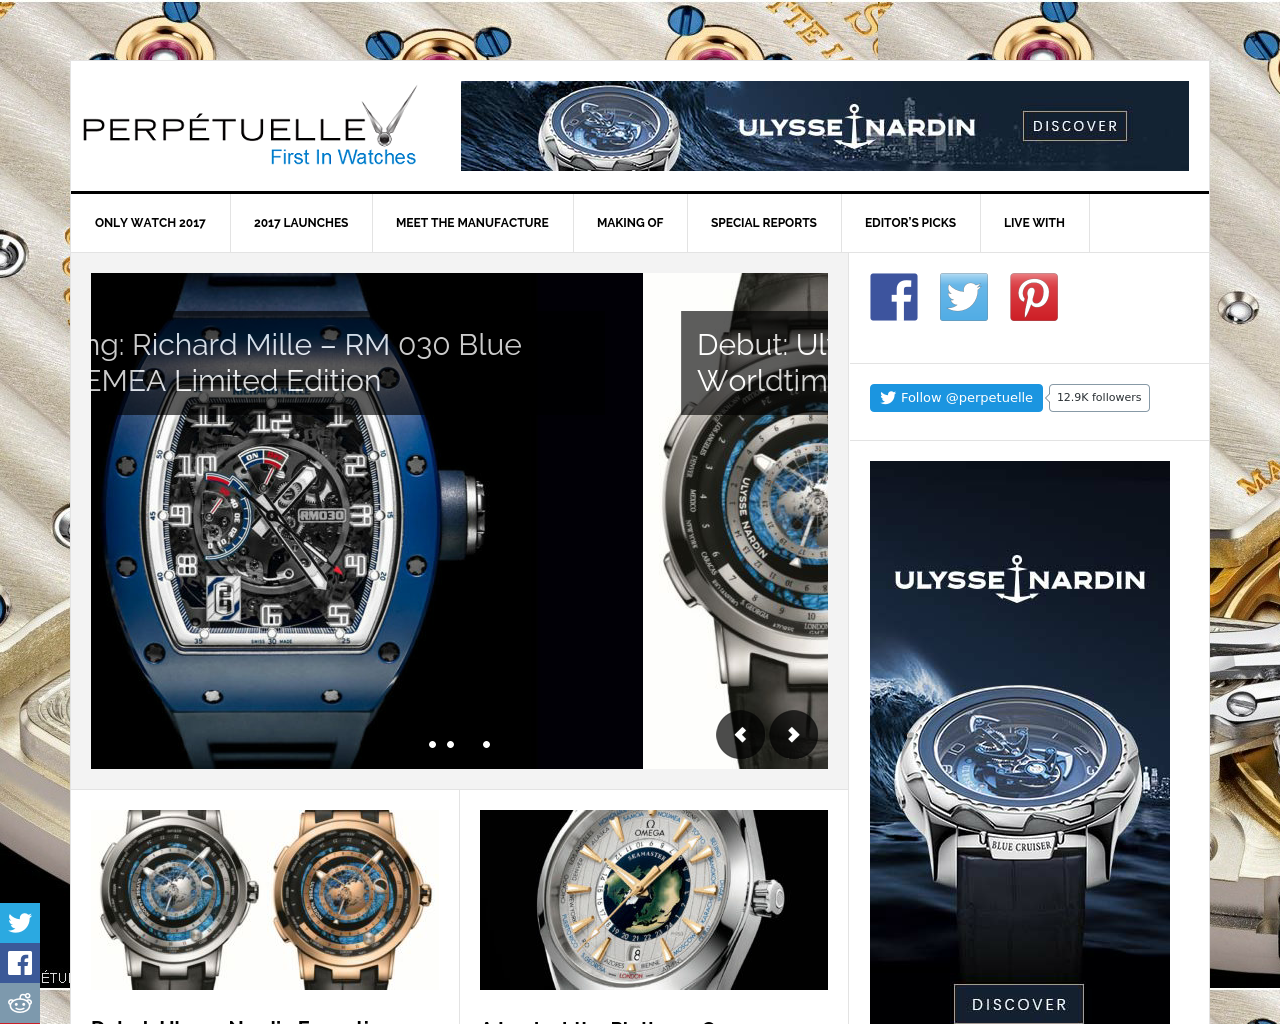 Perpetuelle-Advertising-Reviews-Pricing